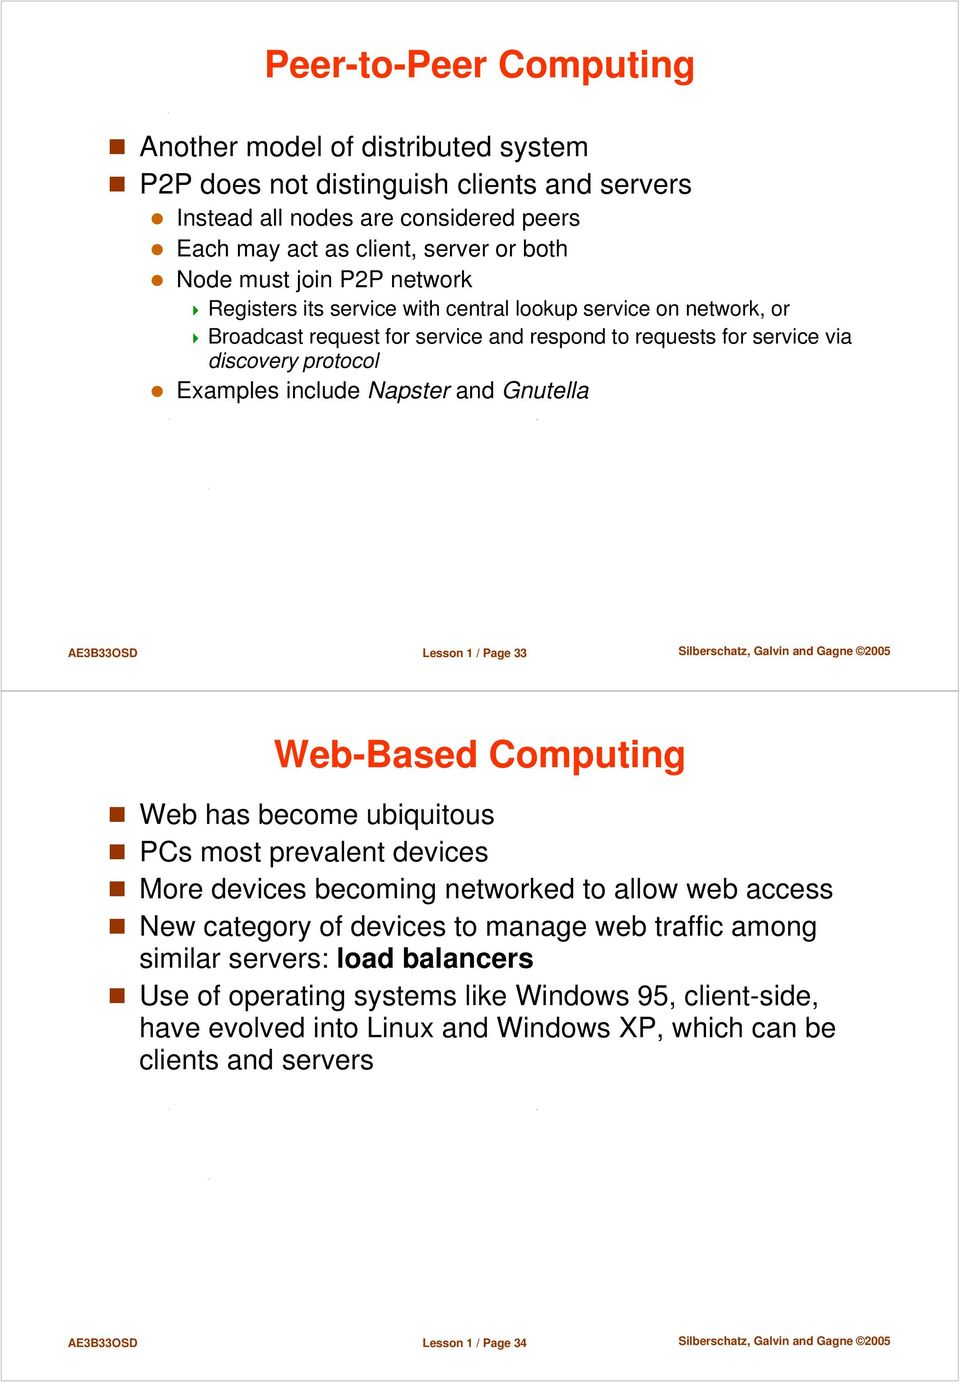 Gnutella AE3B33OSD Lesson 1 / Page 33 Web-Based Computing Web has become ubiquitous PCs most prevalent devices More devices becoming networked to allow web access New category of devices to manage